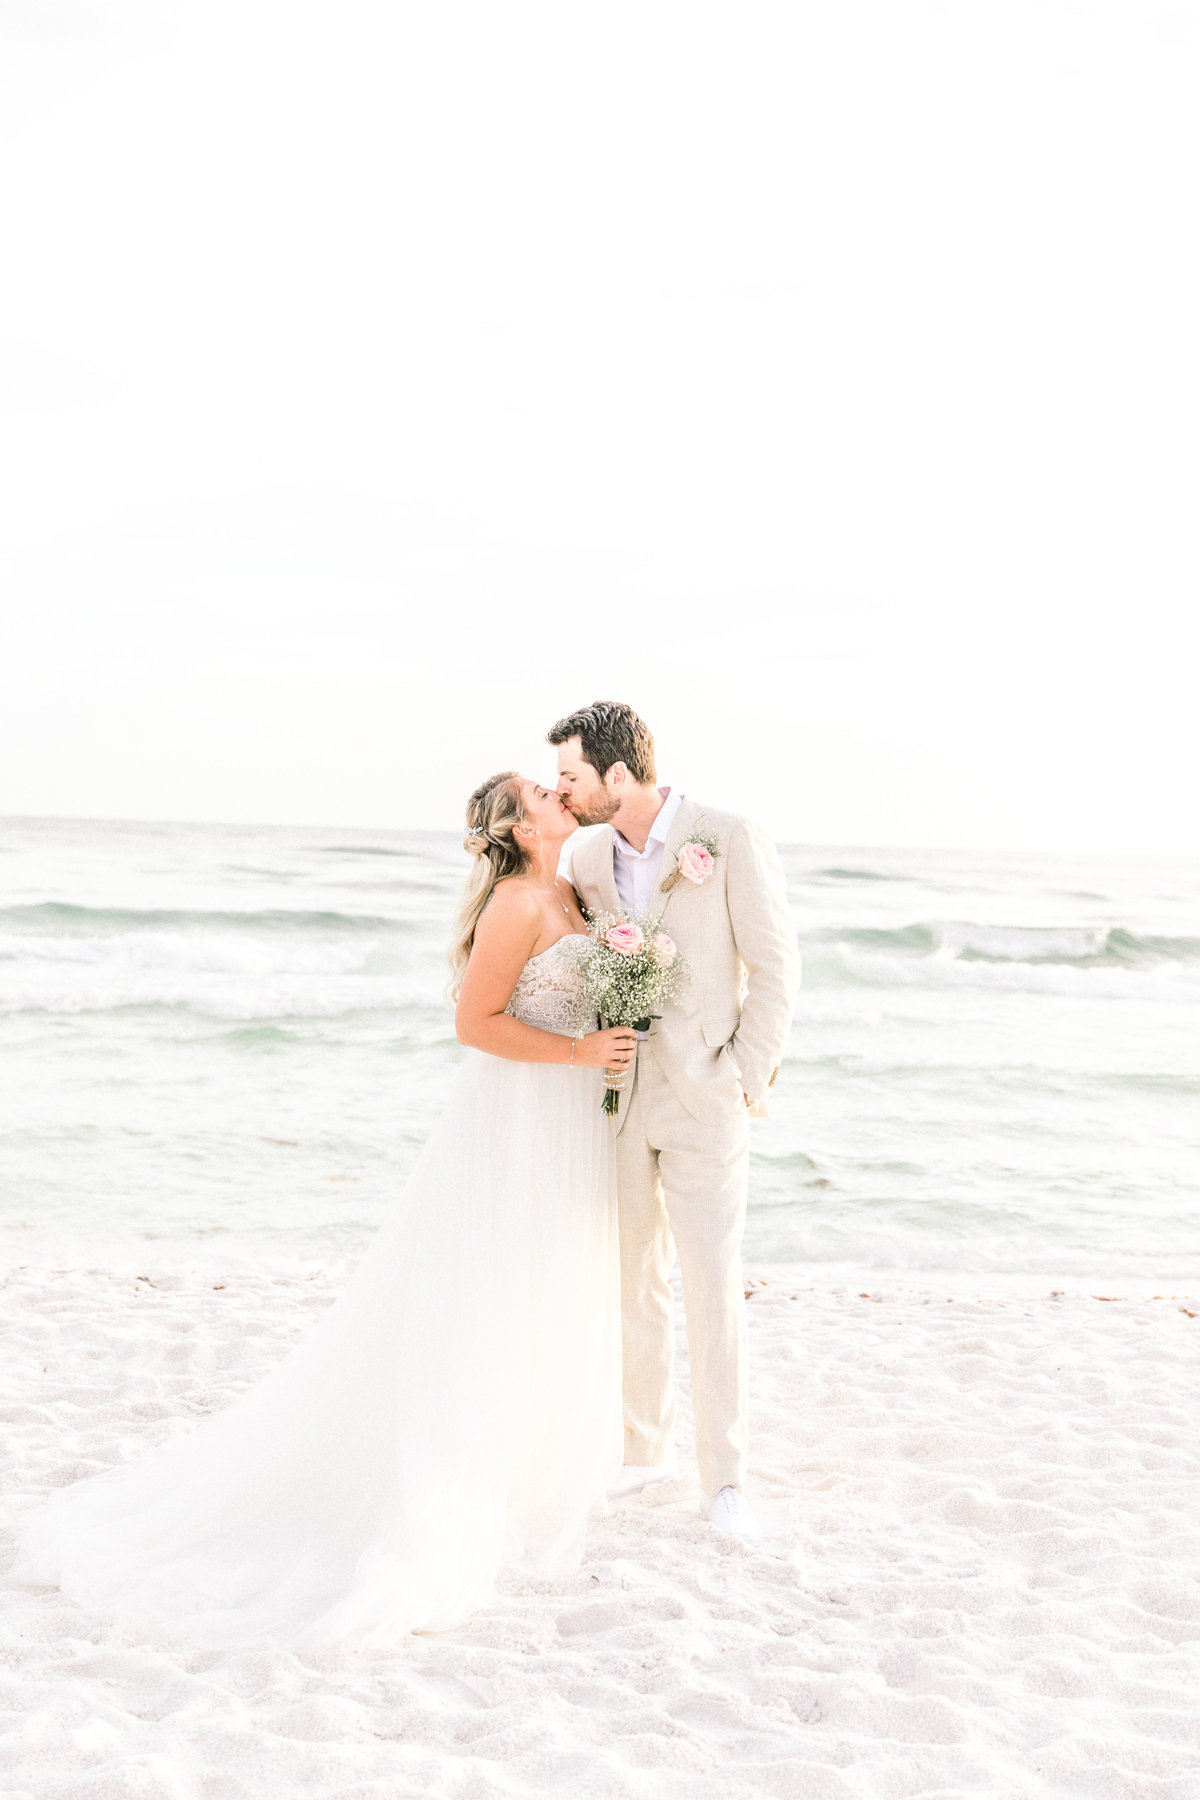 Miramar Beach Bride and Groom Wedding Portraits